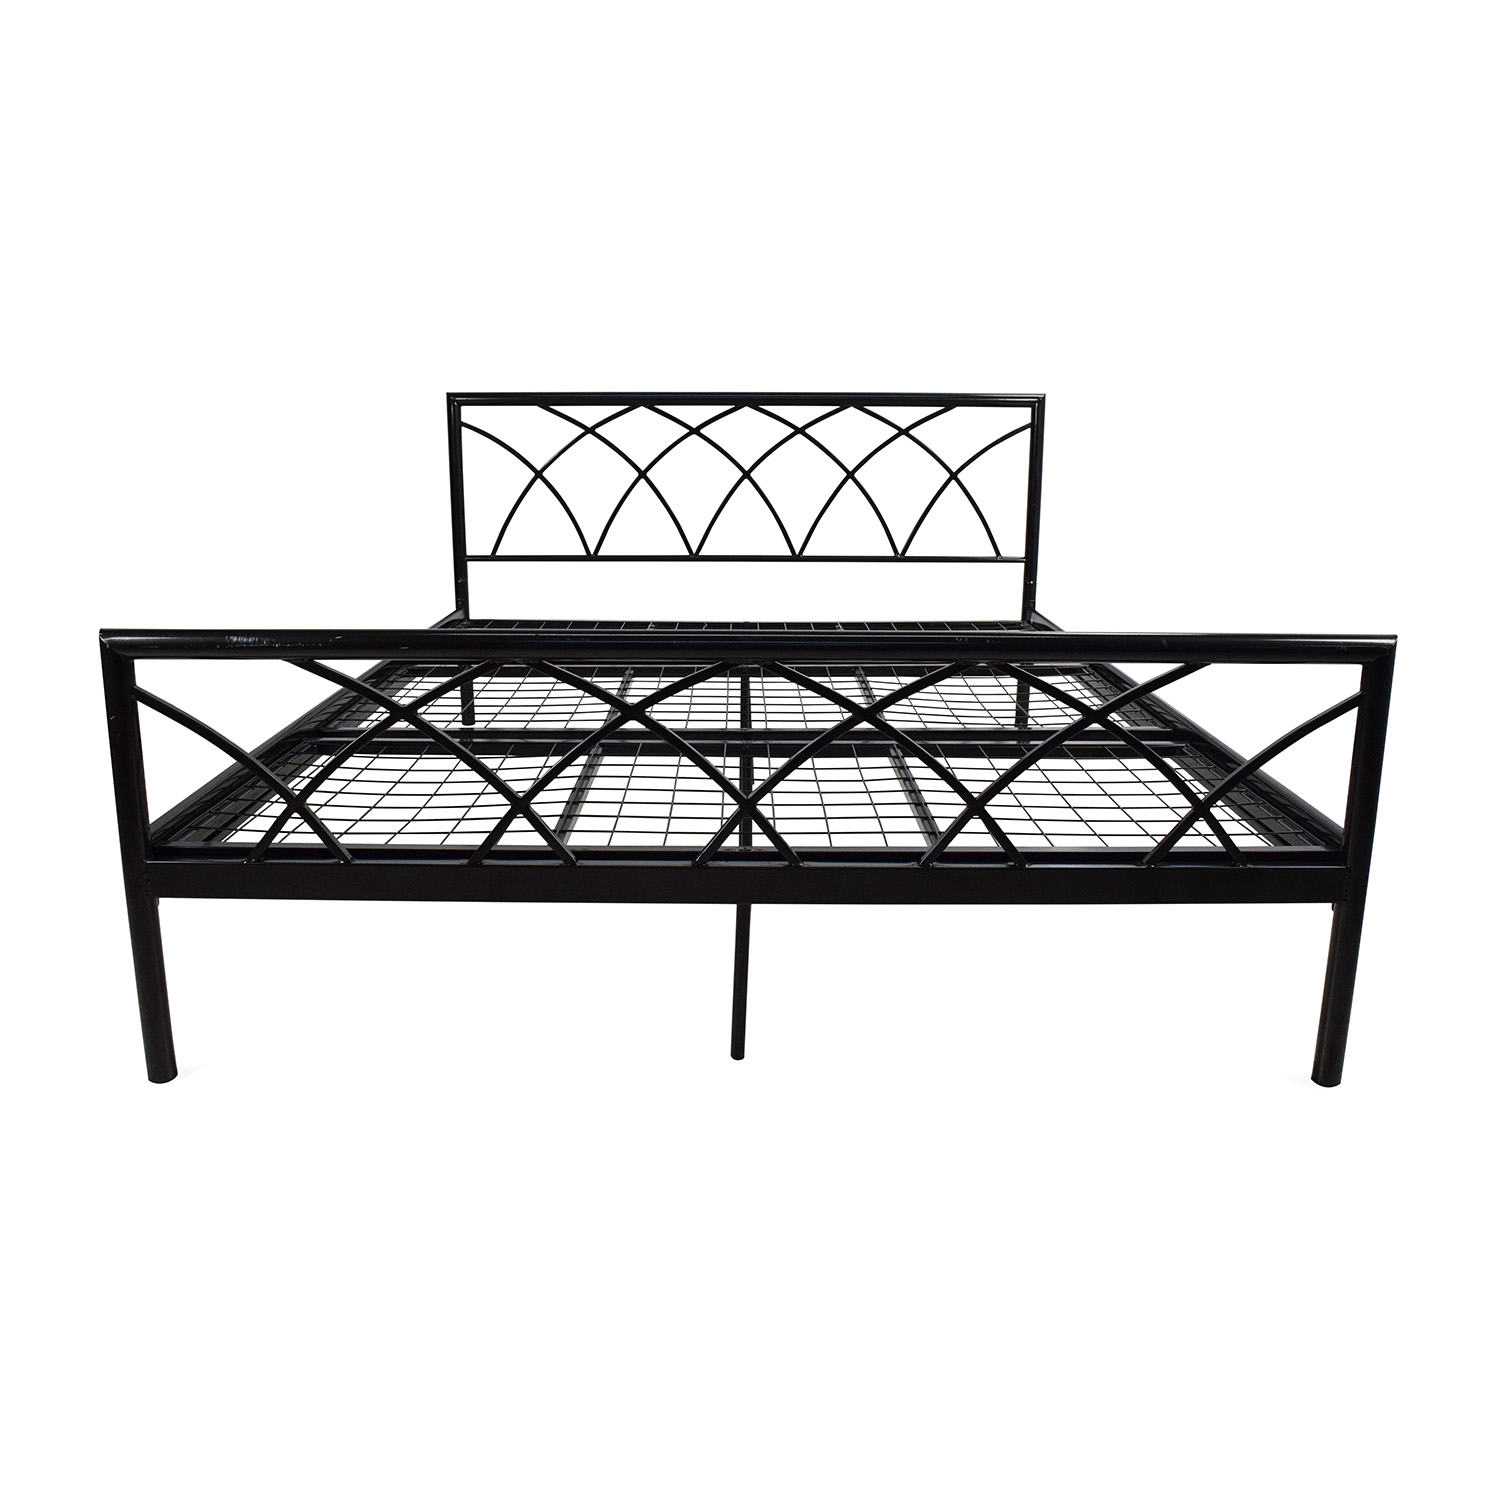 Custom Metal Bed Frame Queen Creative